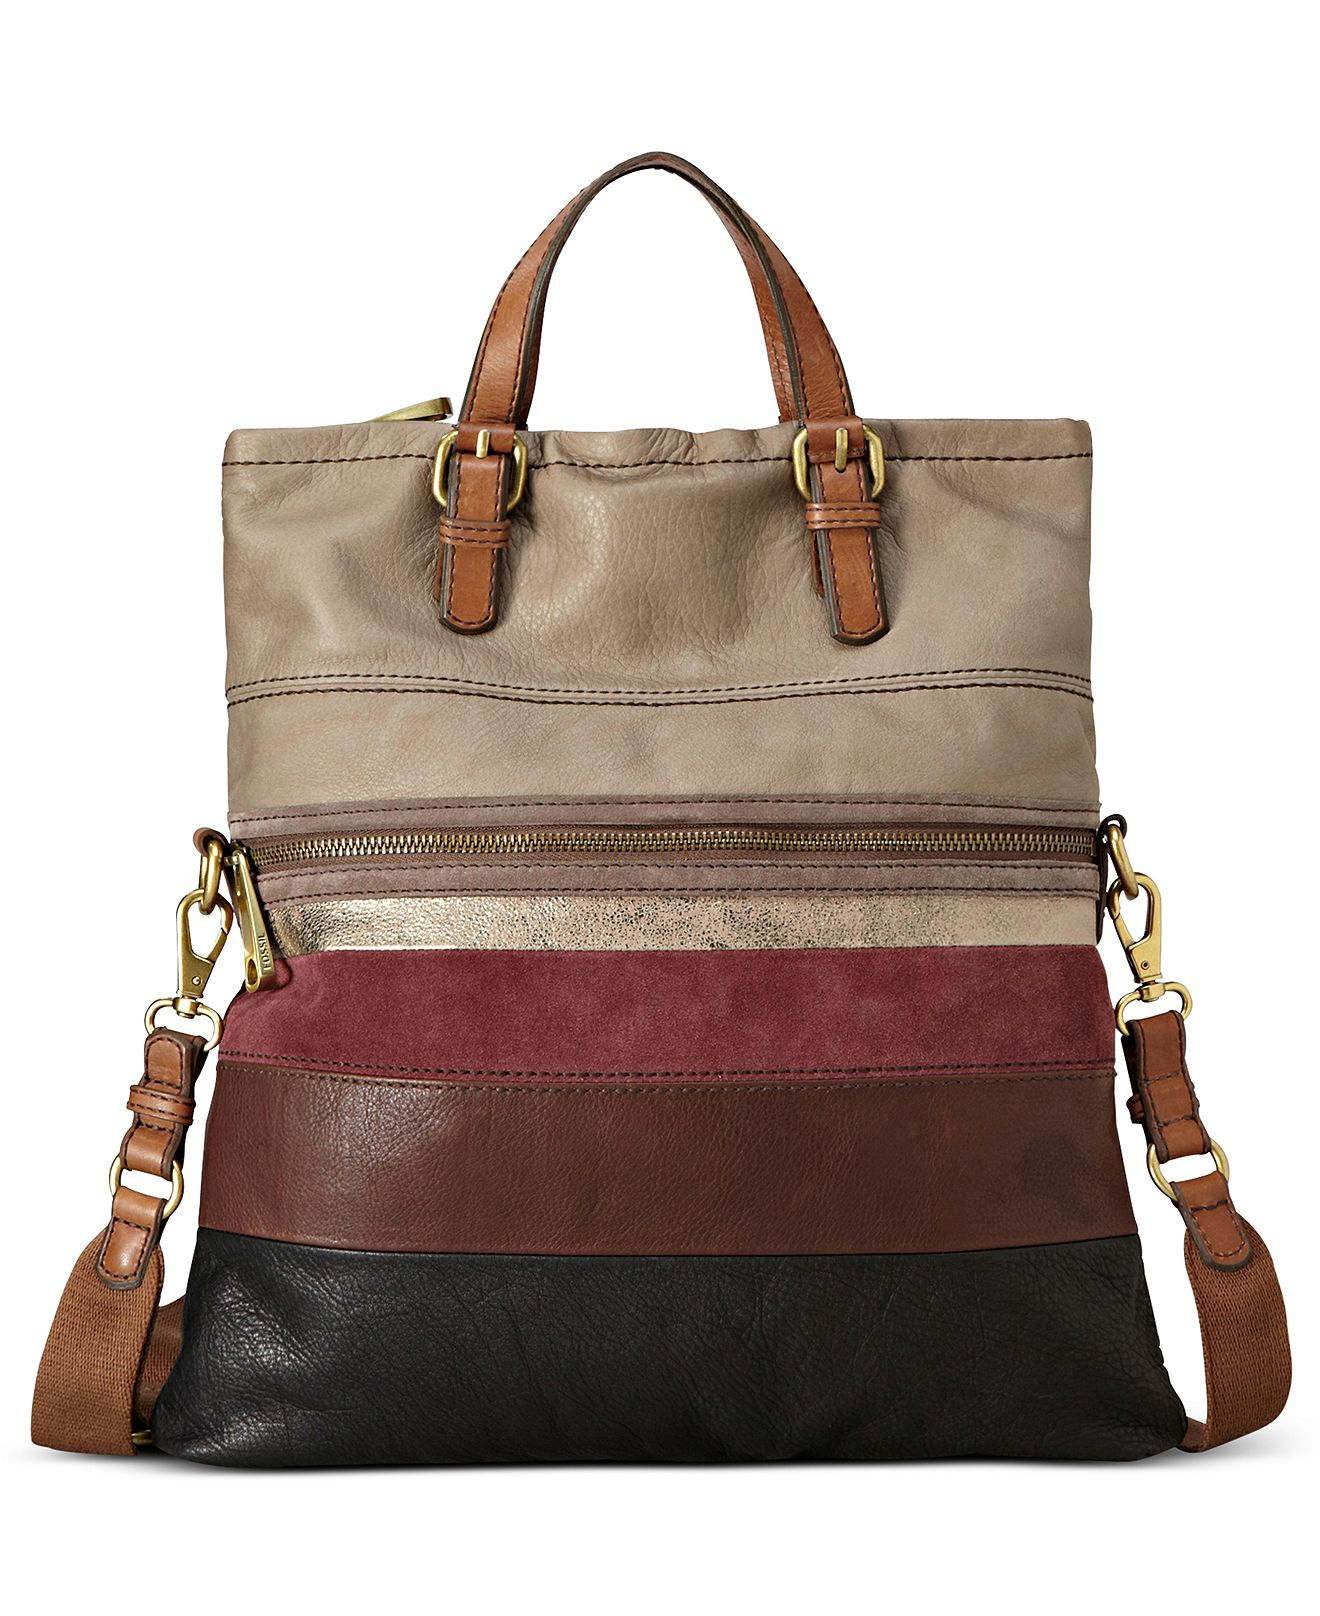 Fossil Explorer Stripe Leather Tote - Fossil - Handbags & Accessories -  Macy's